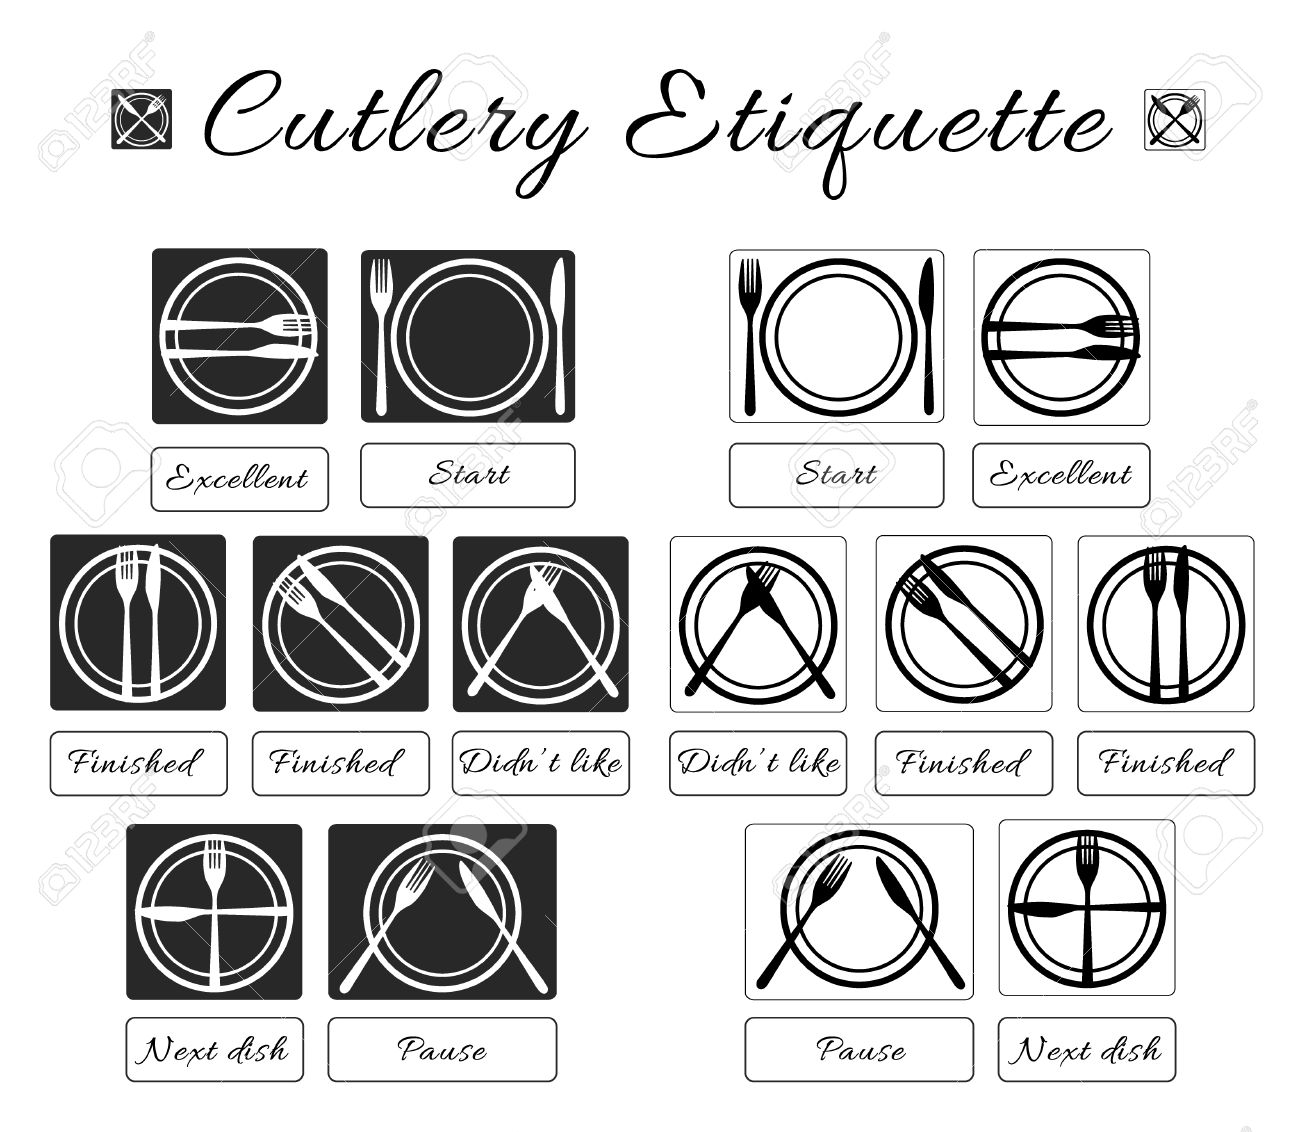 Cutlery Etiquette Table Set Of Eating Utensils Icons Food Rules